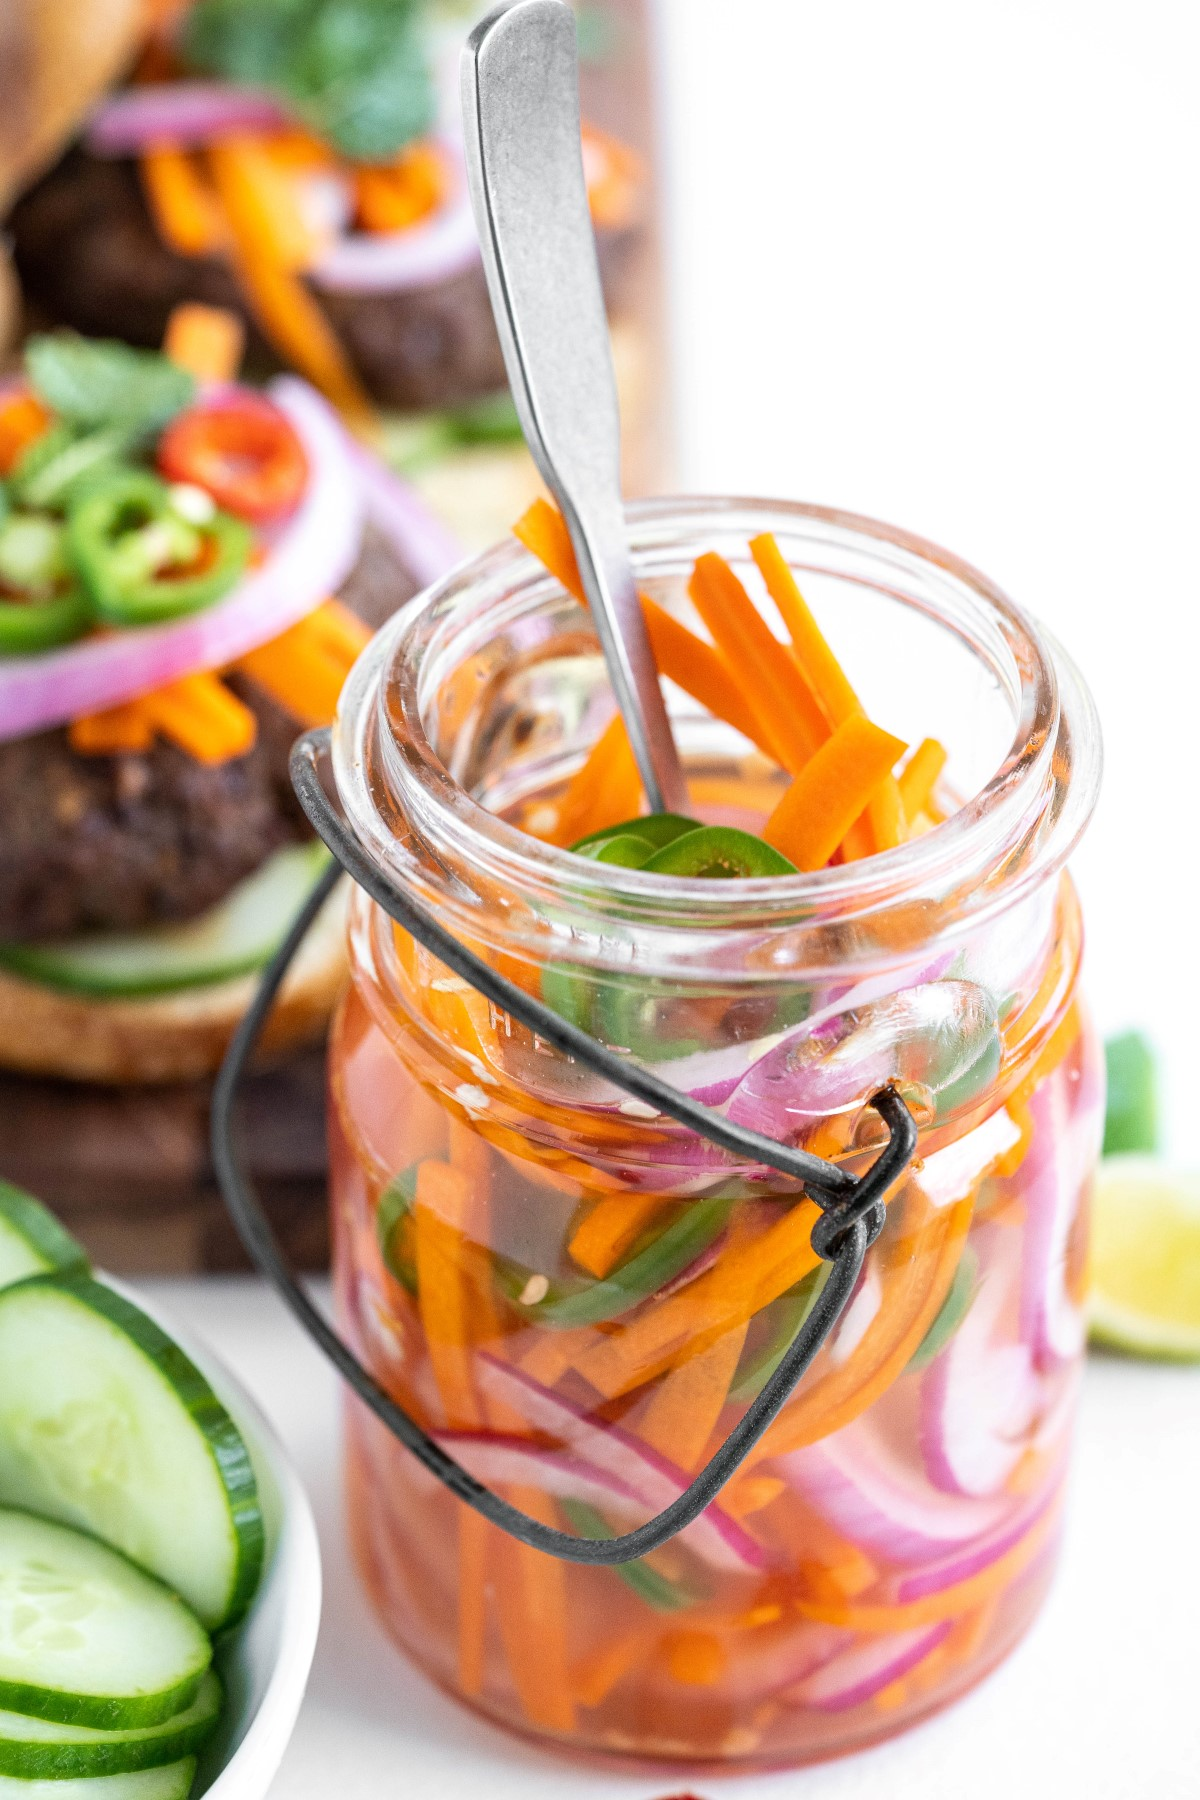 Jar of quick pickled vegetables with a fork in the jar and a burger loaded with pickled veggies in the back ground.